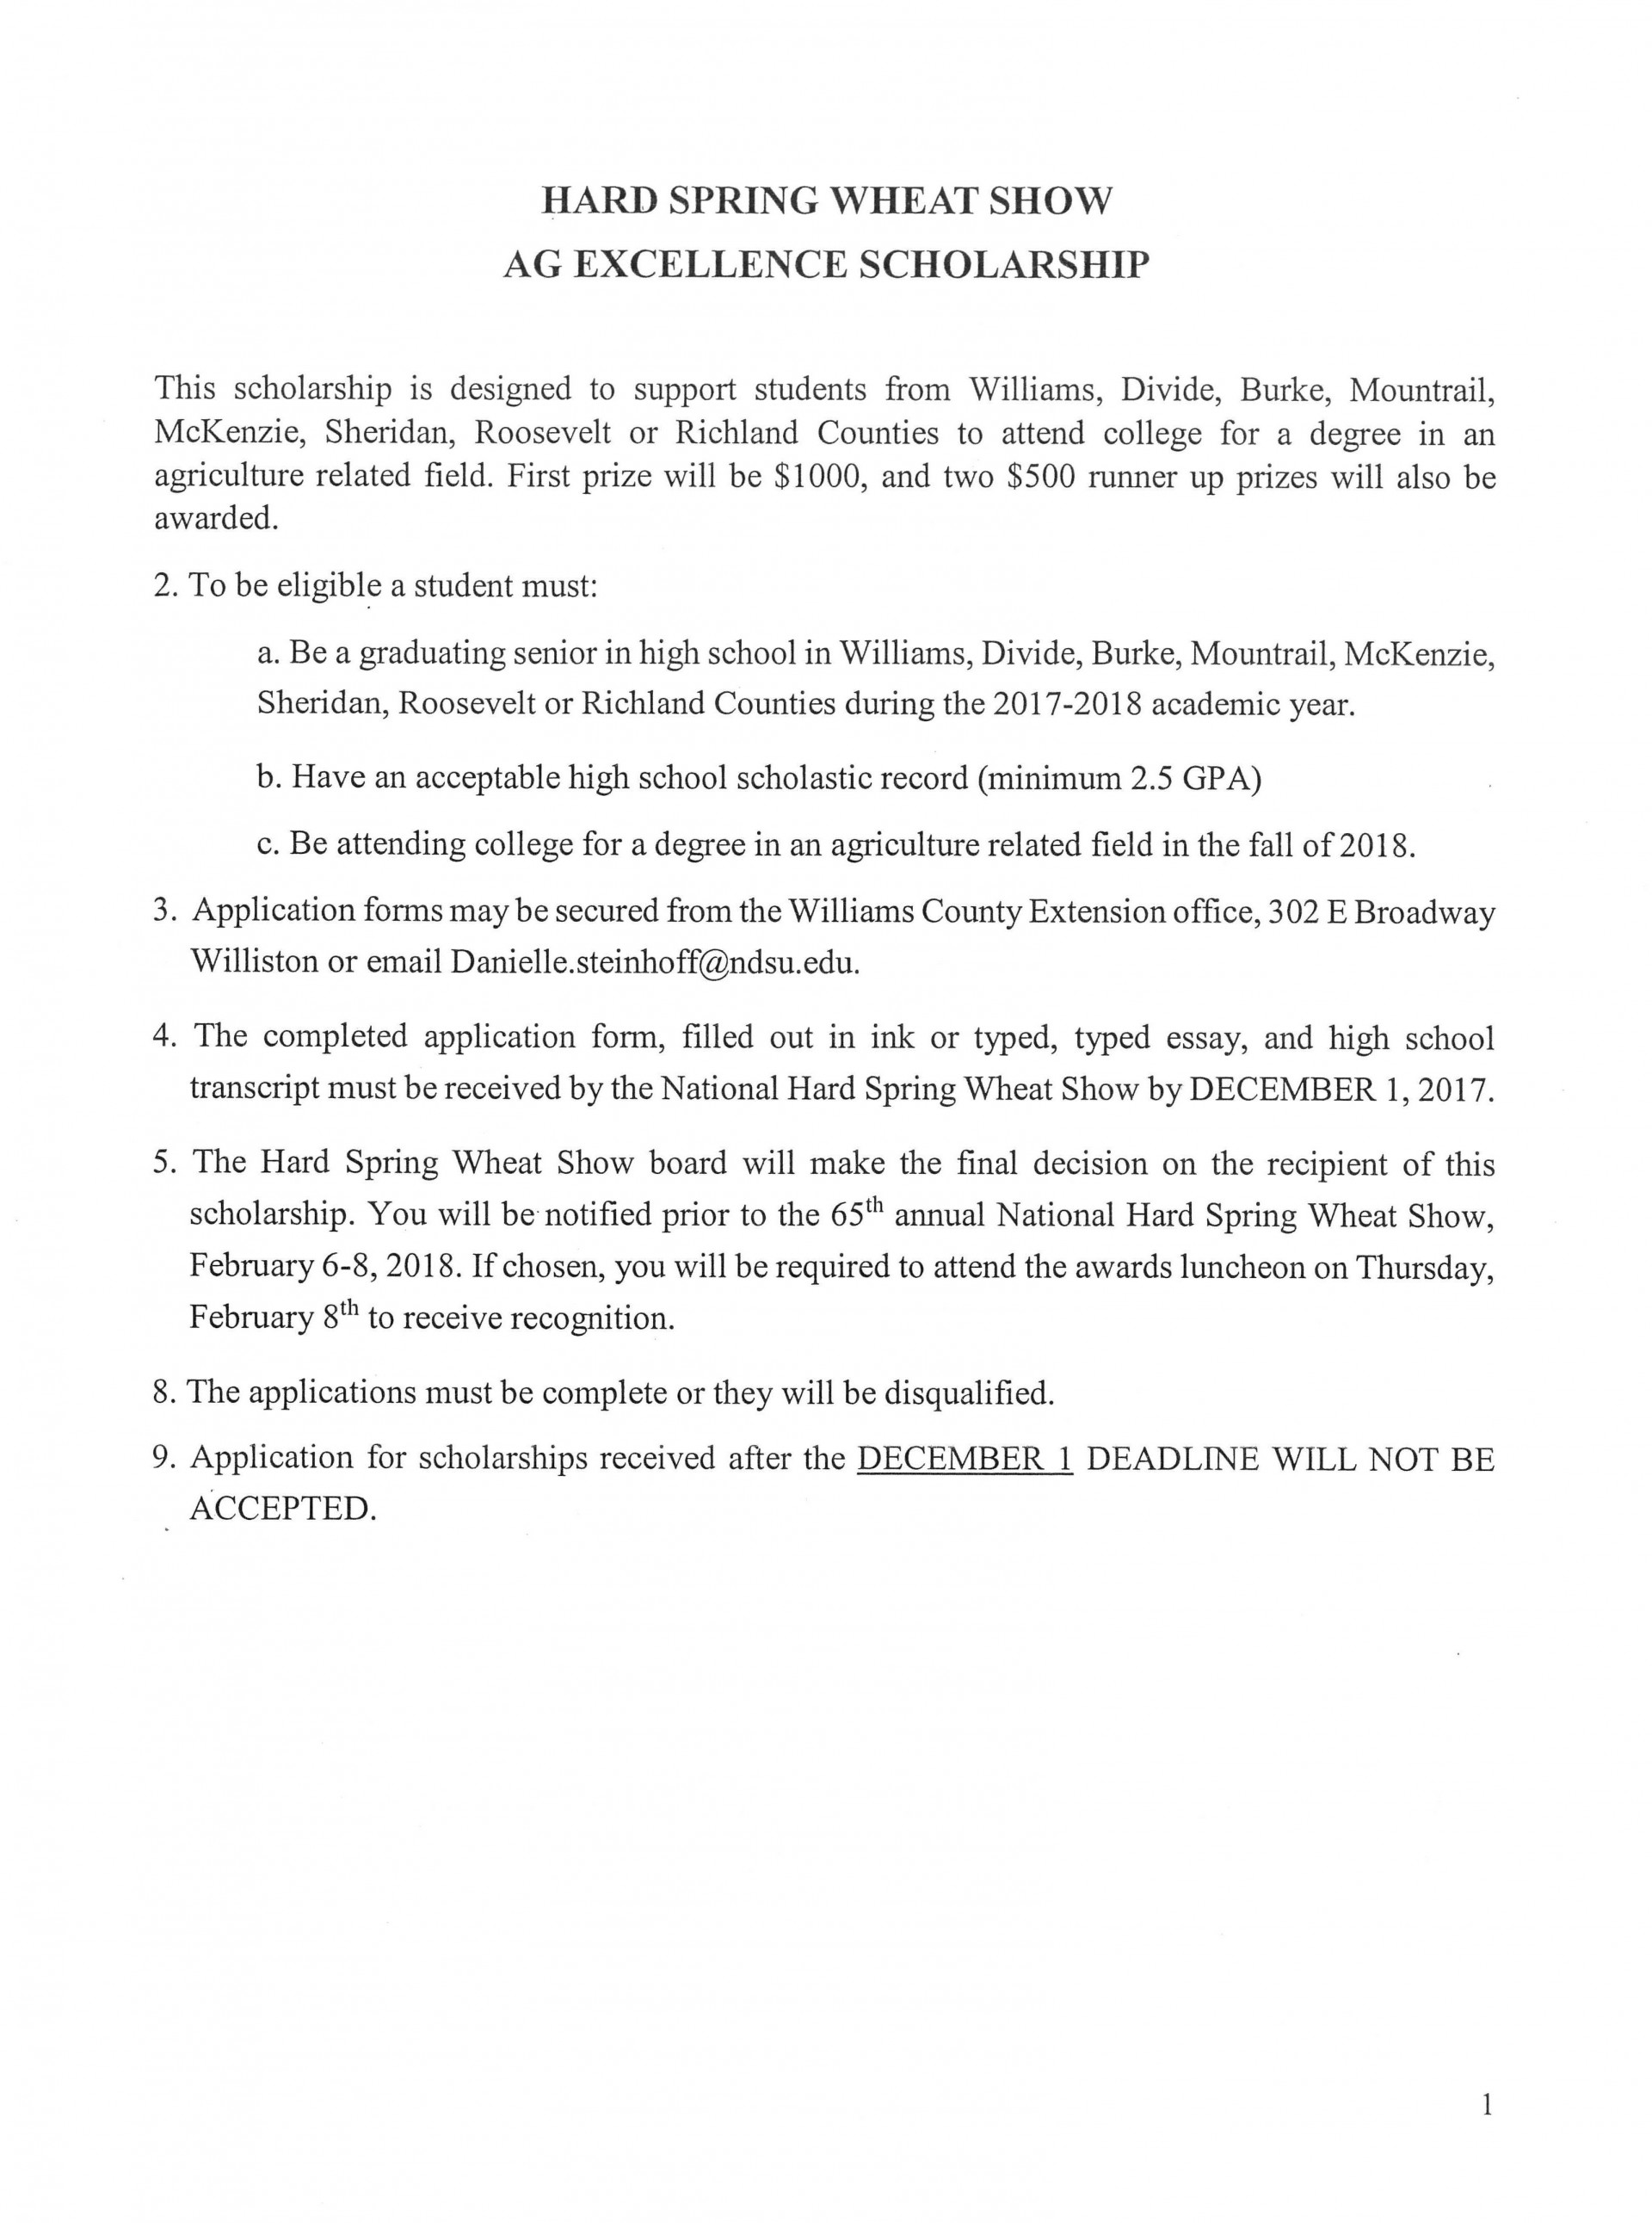 005 Essay Example Scholarships Page 1 Wonderful 2017 No College Canada 1920